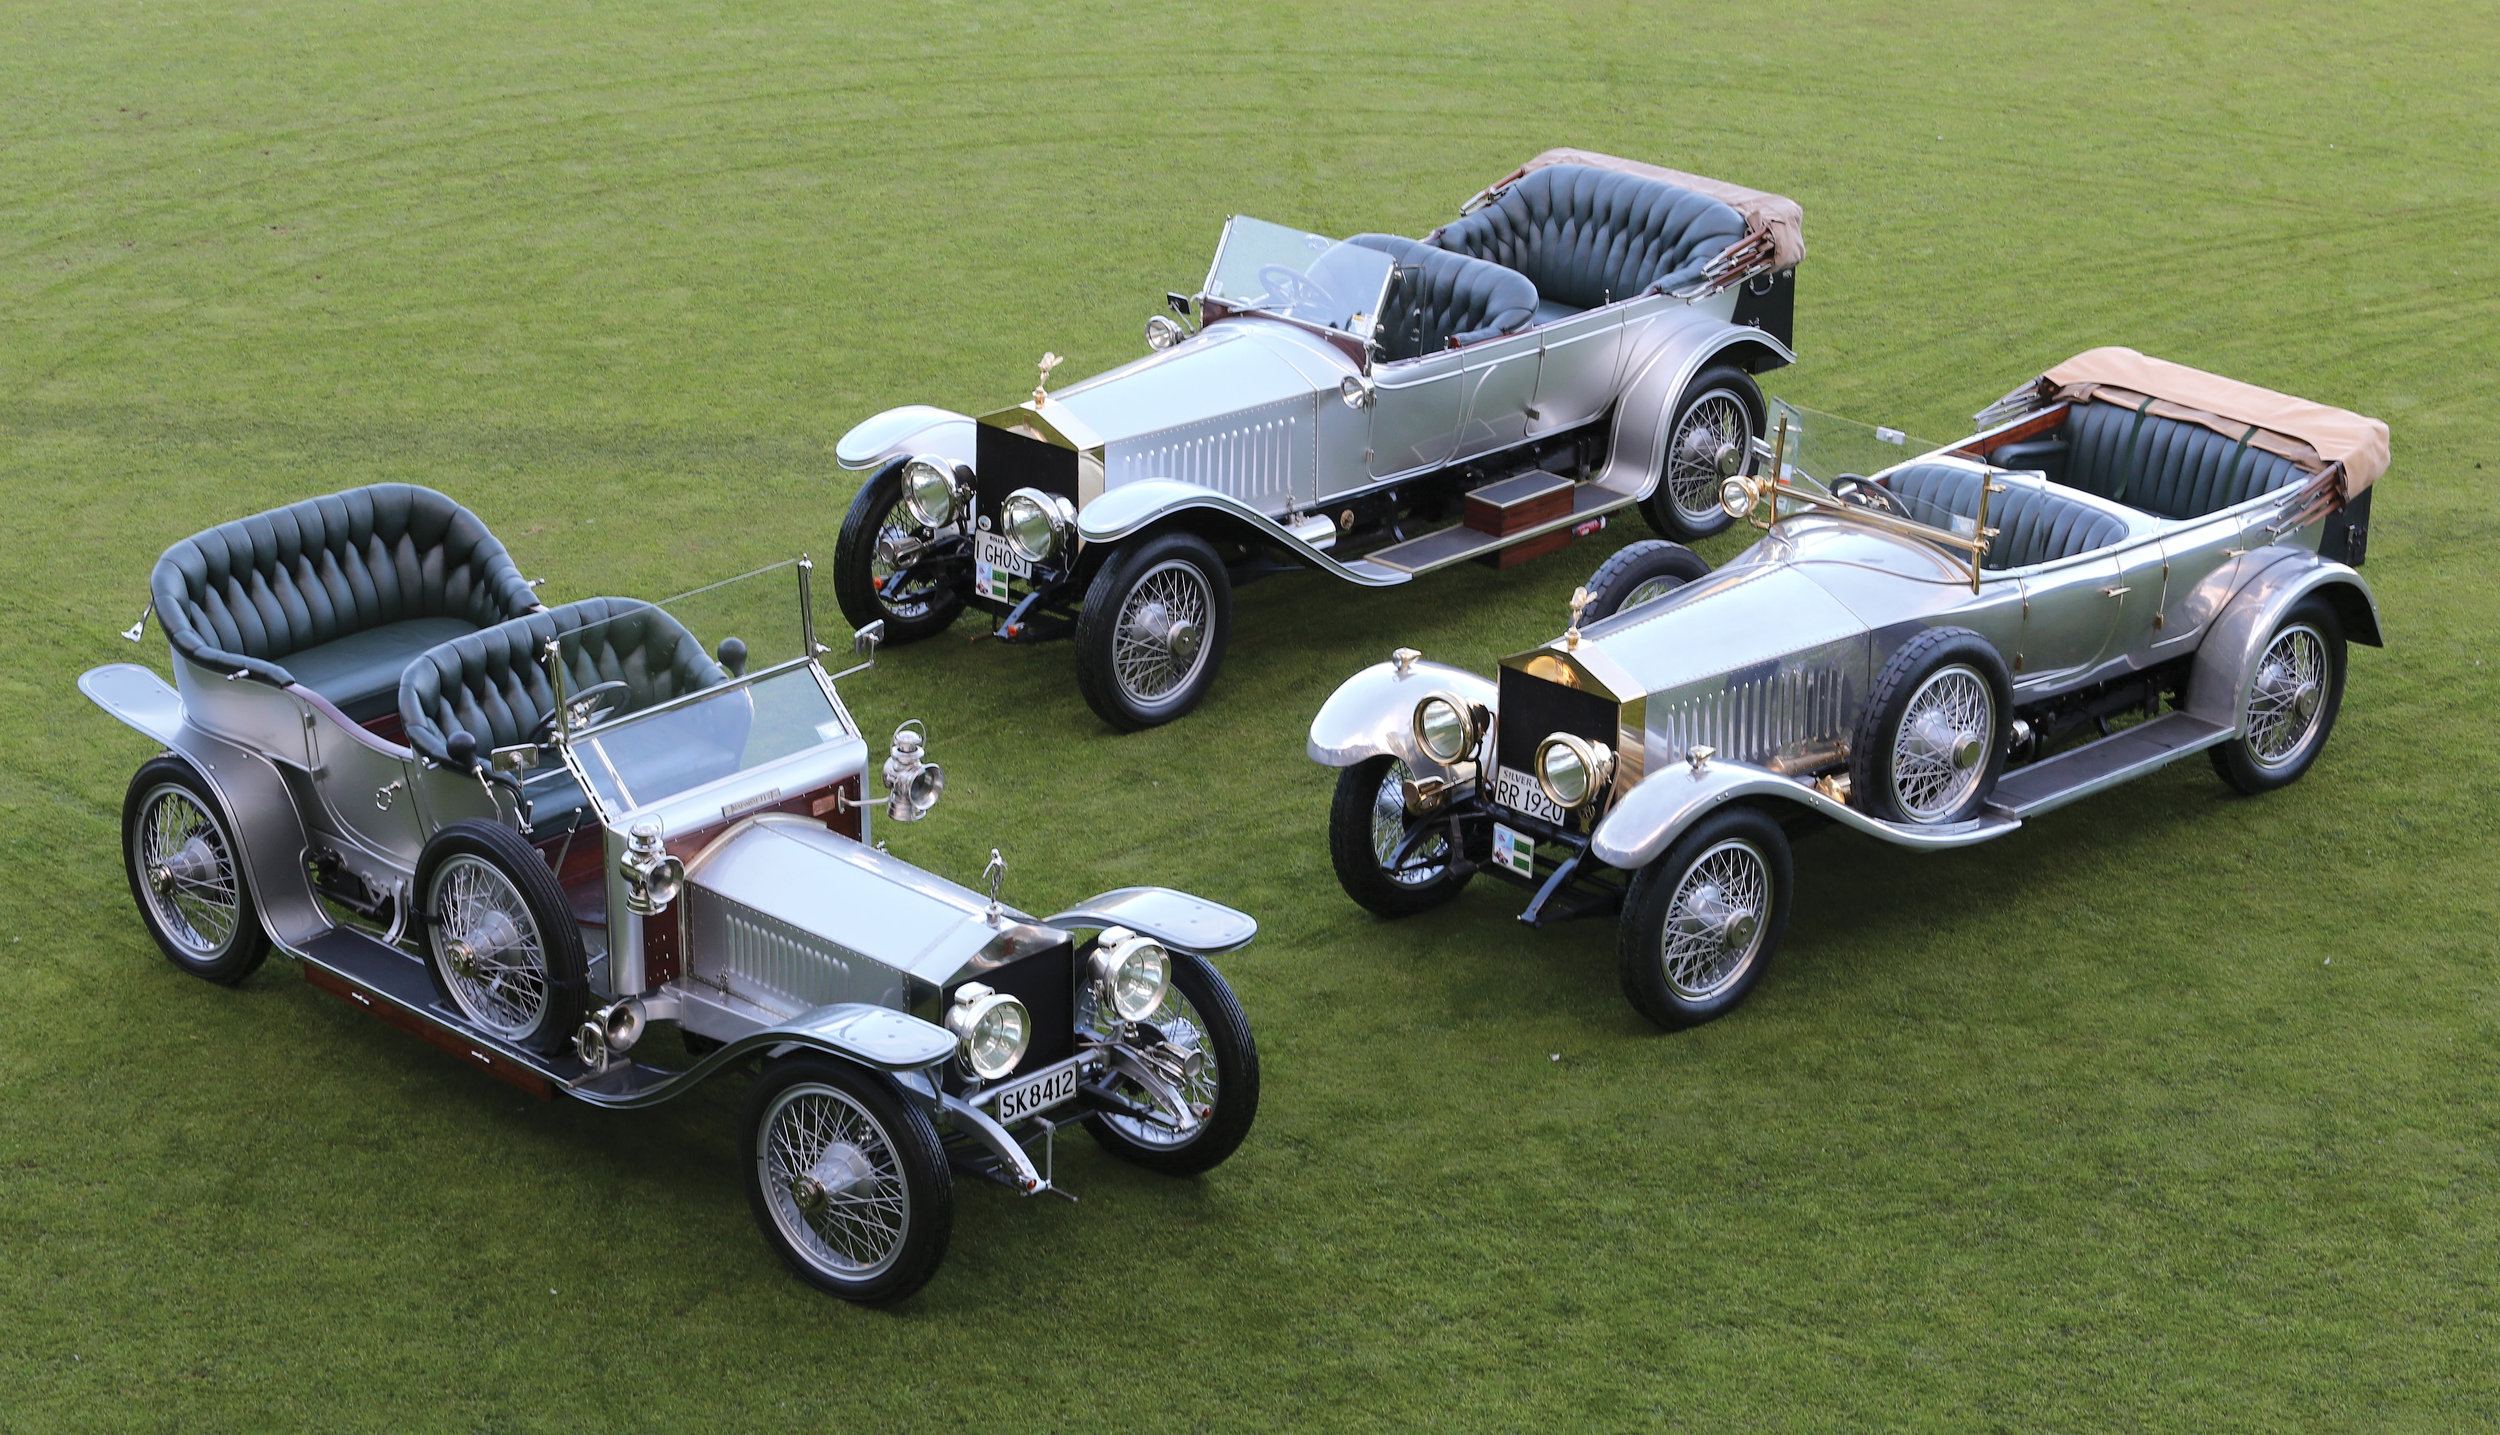 On show in their full glory, the three Silver Ghost Rolls-Royces—on the left is the 1908 model, once a wreck dumped in the Australian outback; at the rear is a 1914 model, built for the family of the Russian Tsar; and at right is a 1920 model, made for an English major for 2000 pounds.